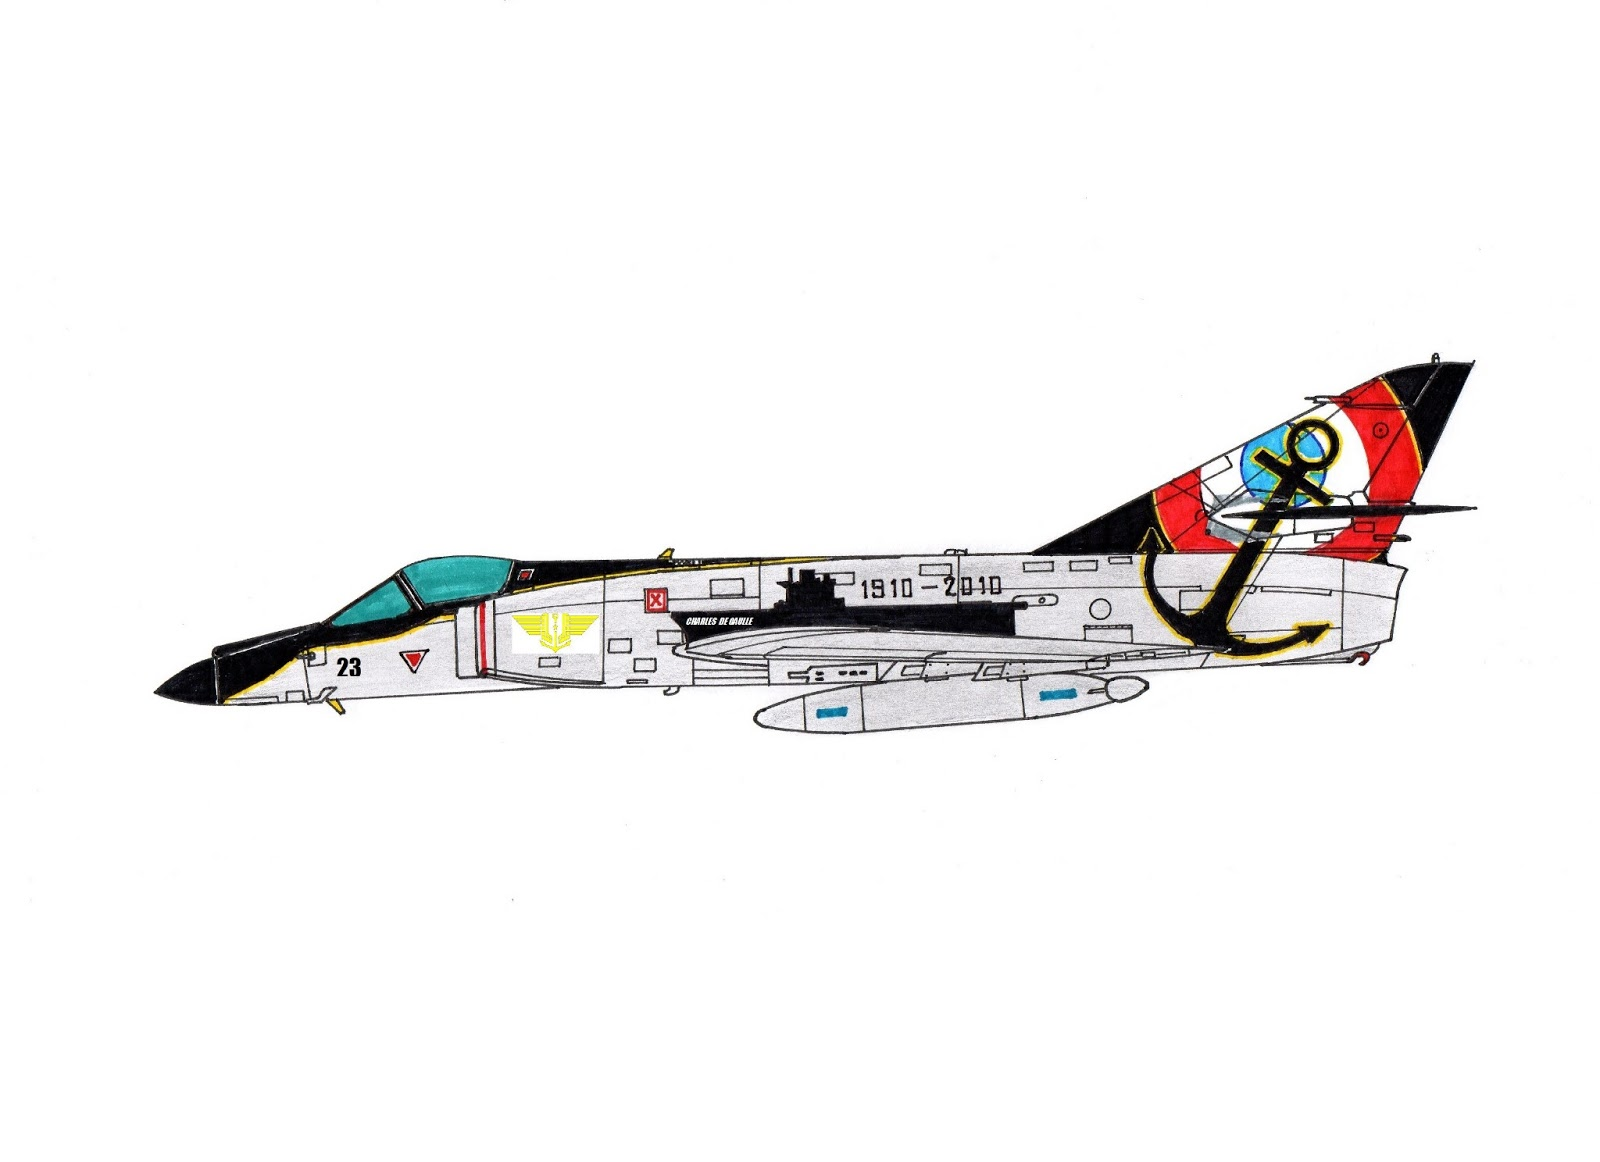 8588 moreover Showthread likewise Watermark together with 10 besides 15. on dassault etendard iv